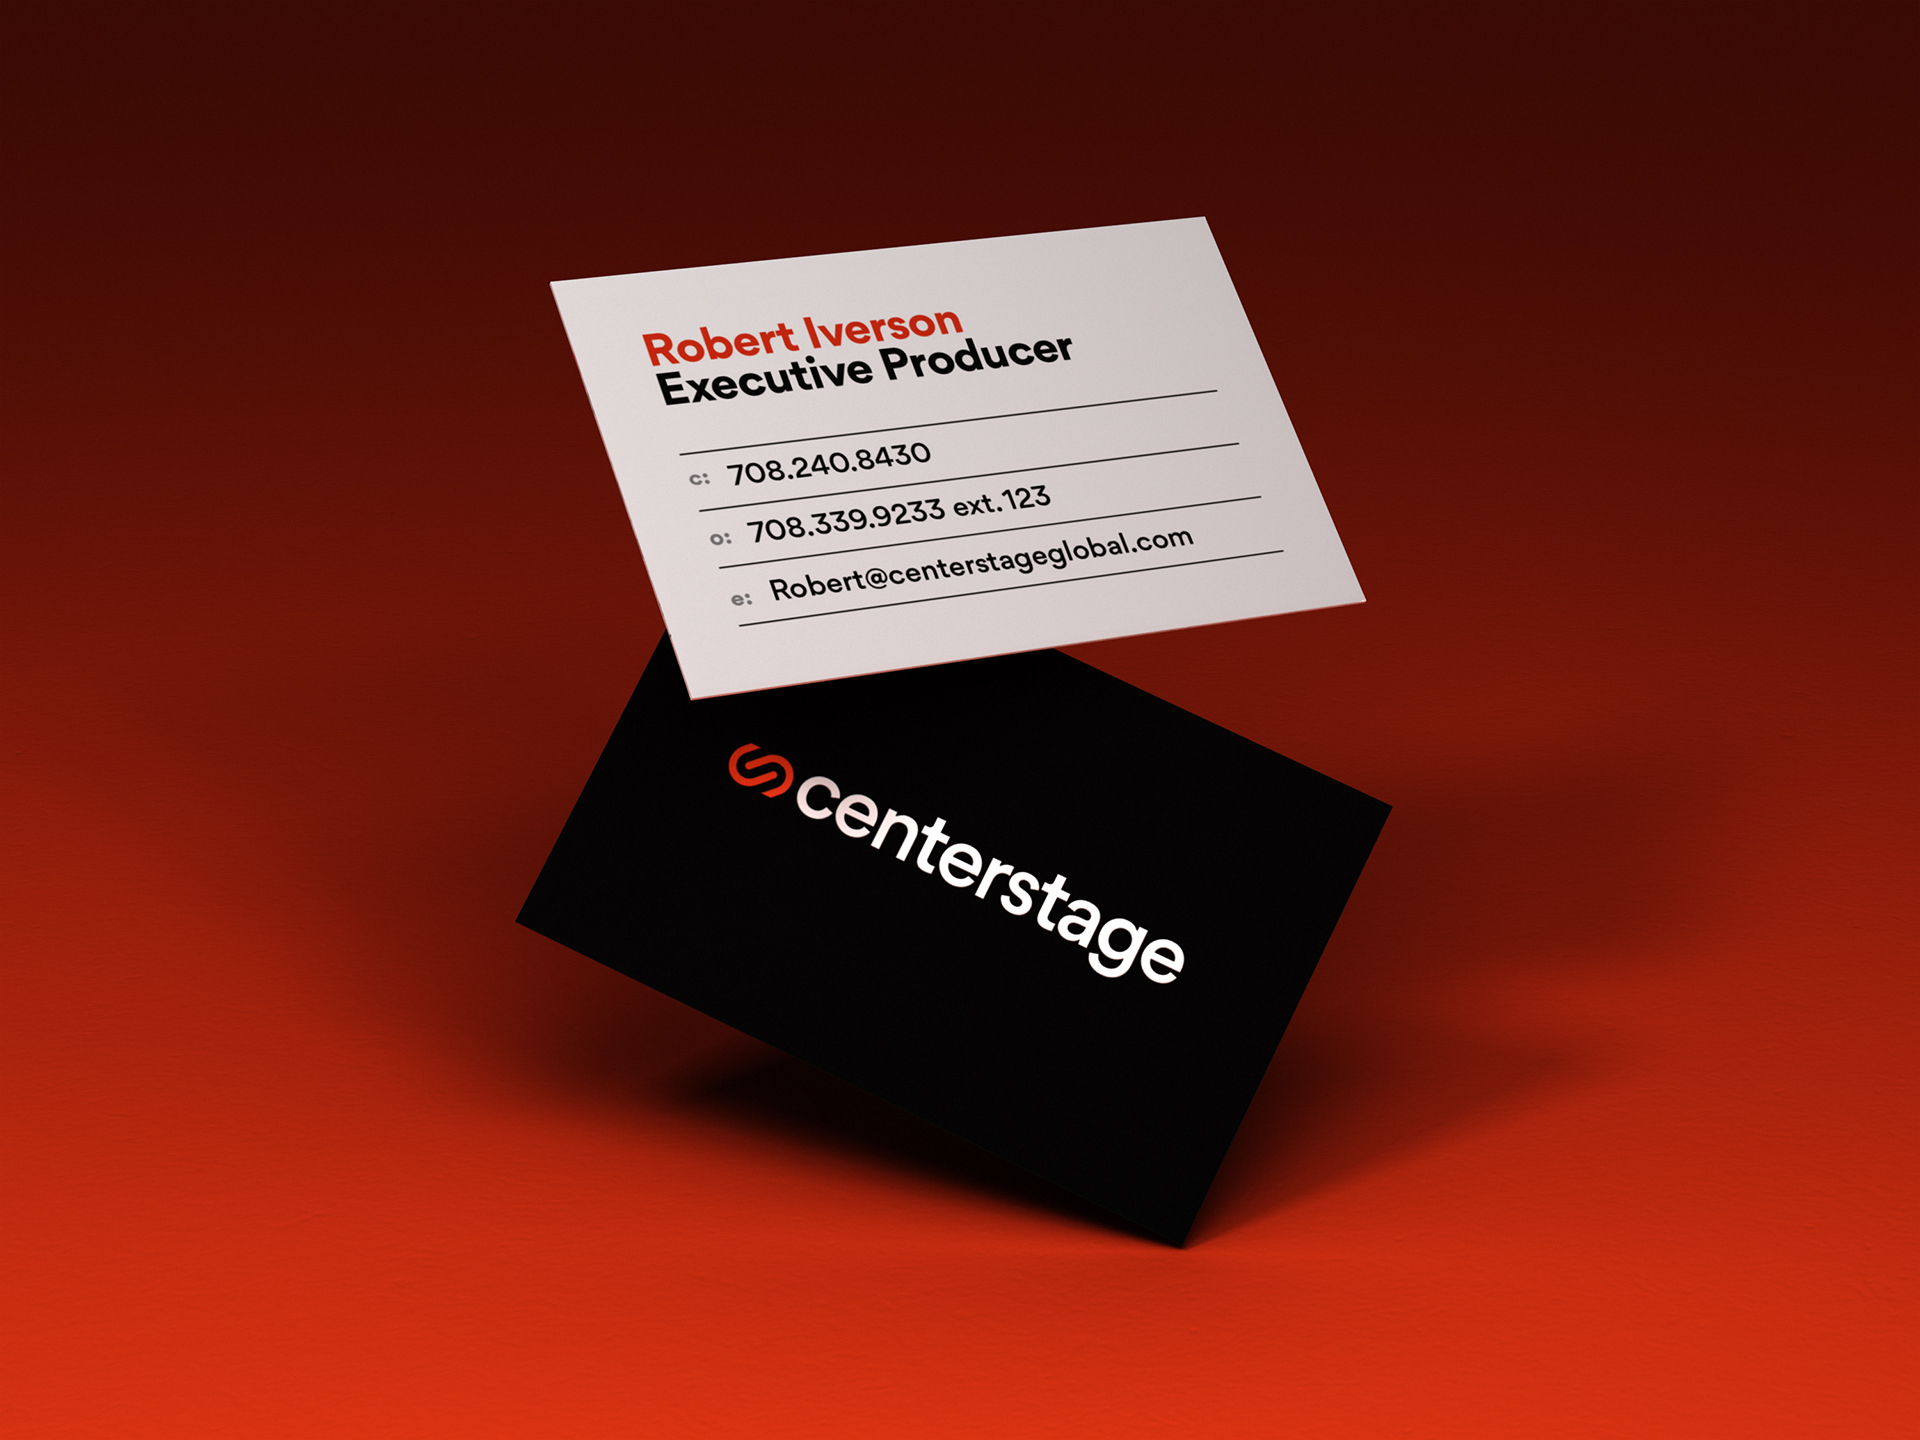 Centerstage business cards